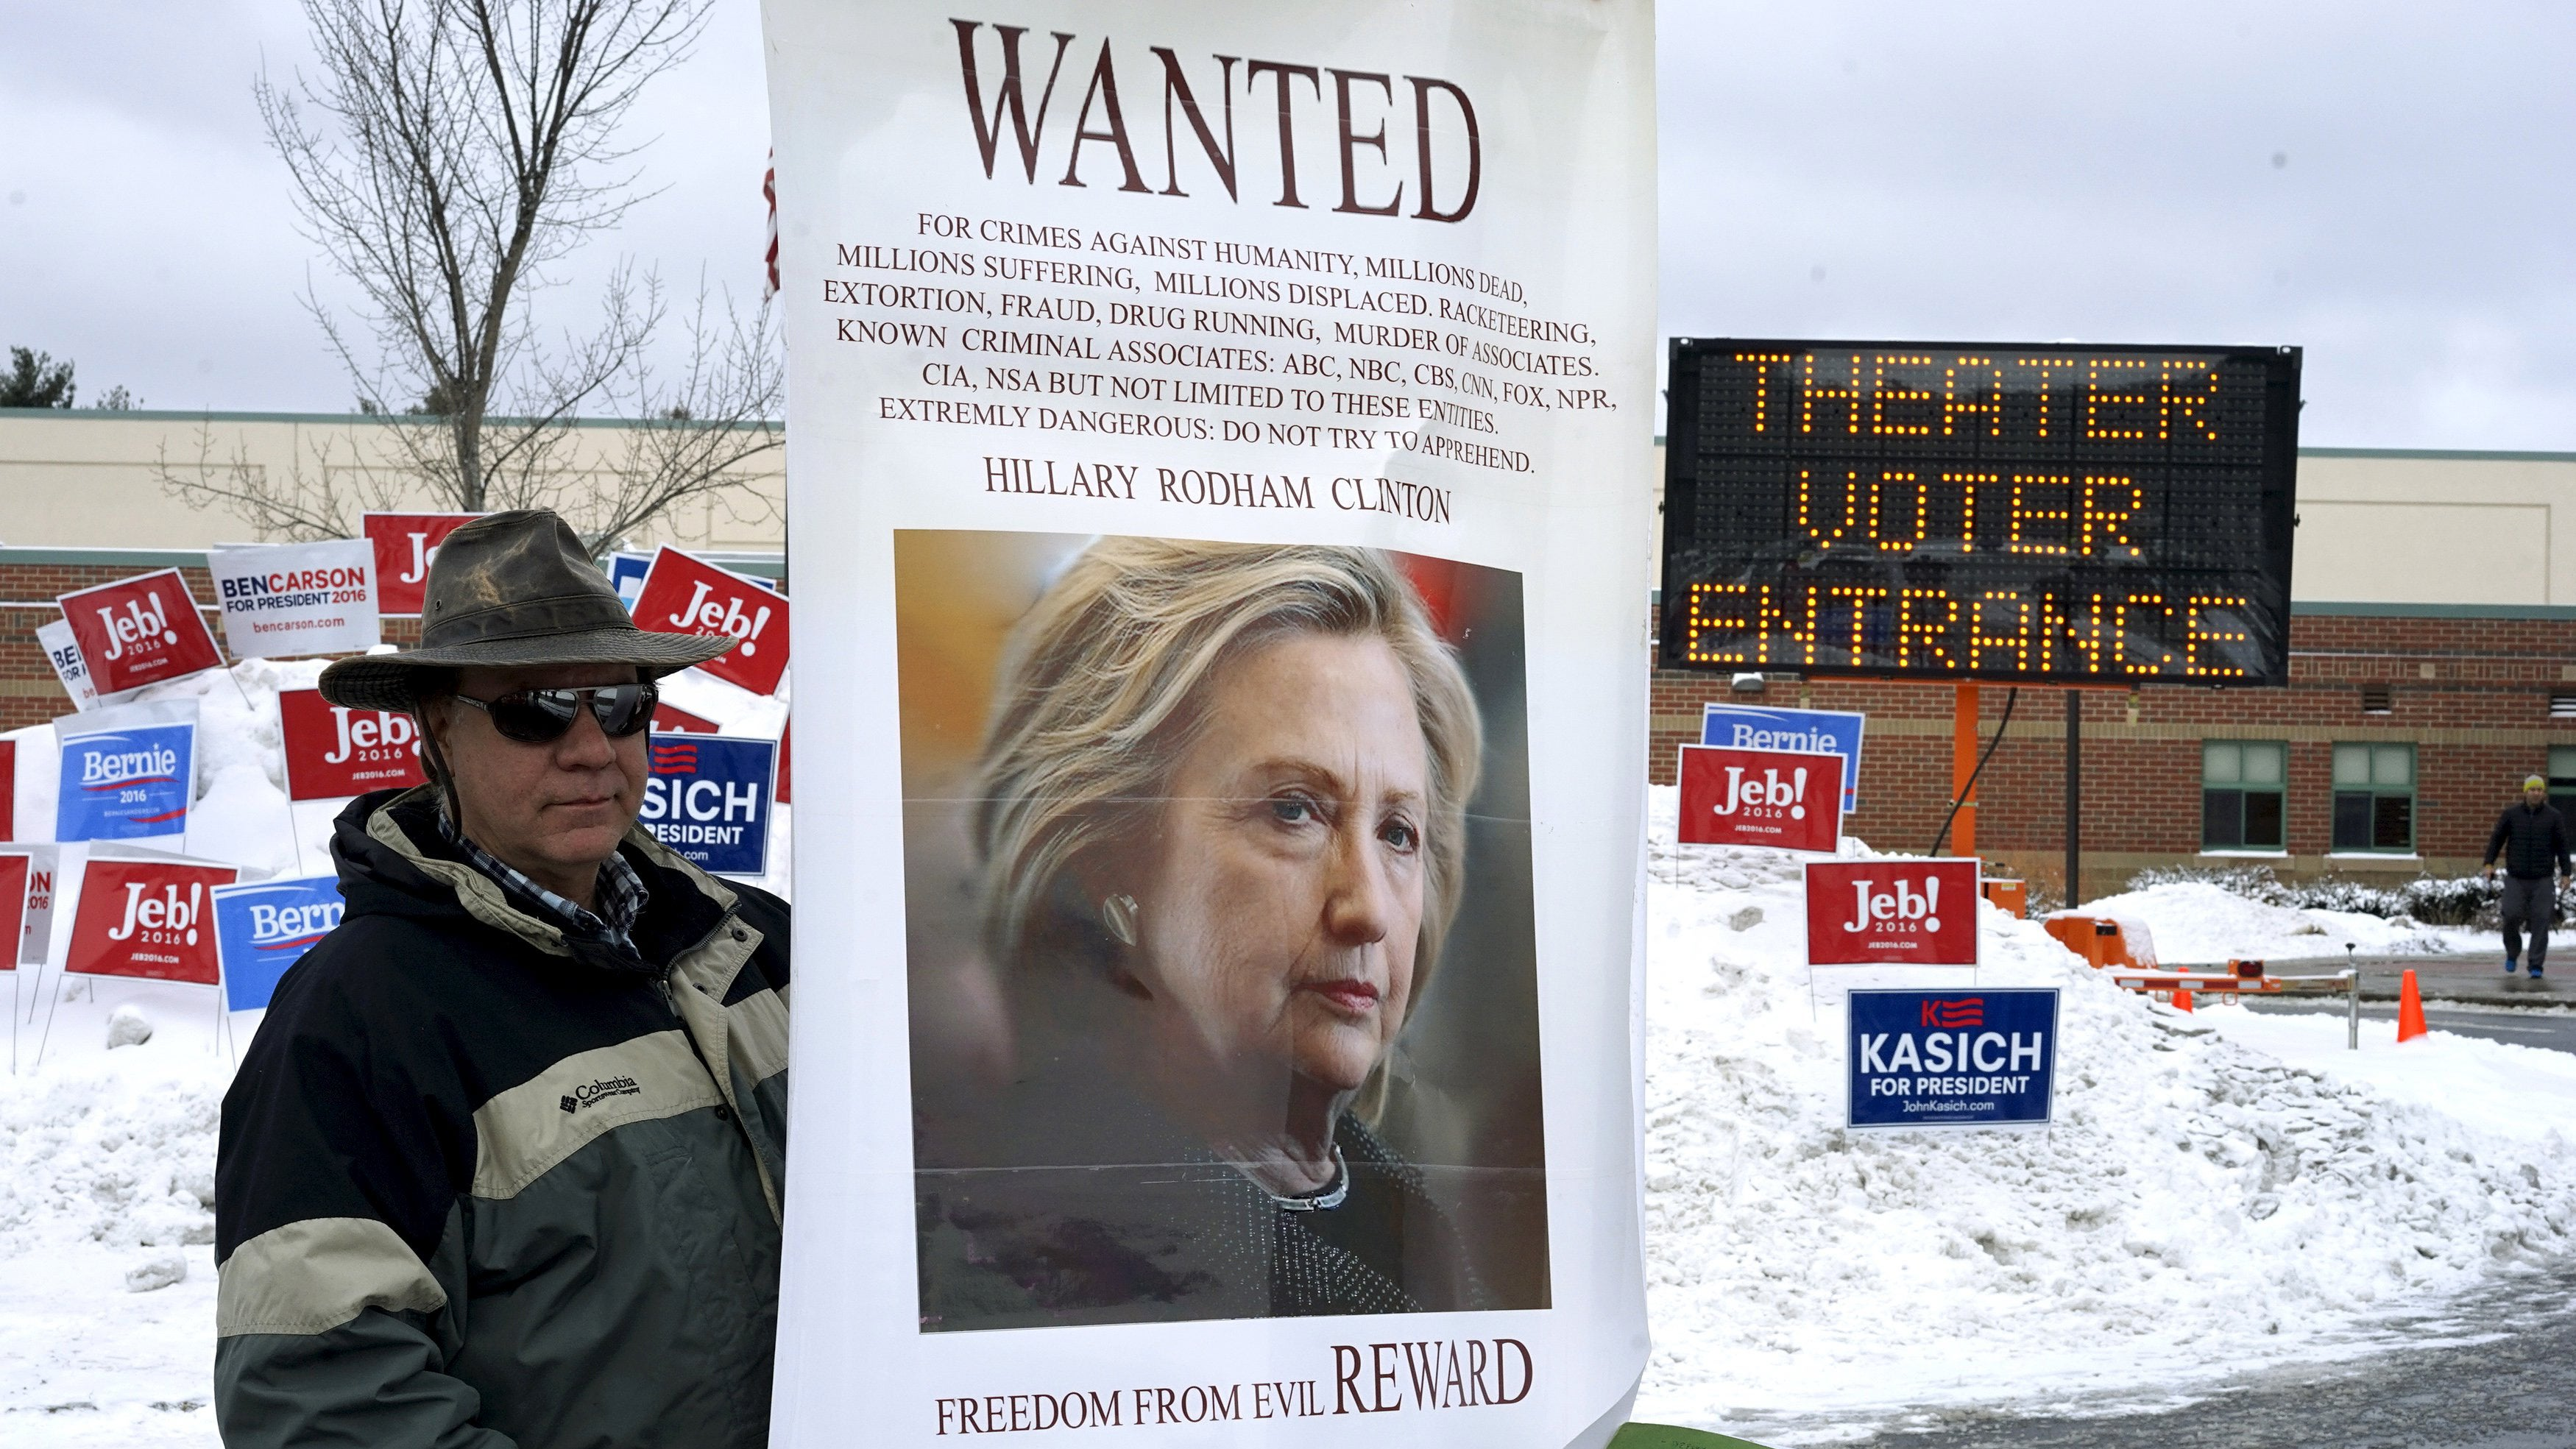 A protestor stands outside the entrance to the polling place for the presidential primary at Bedford High School in Bedford, New Hampshire.